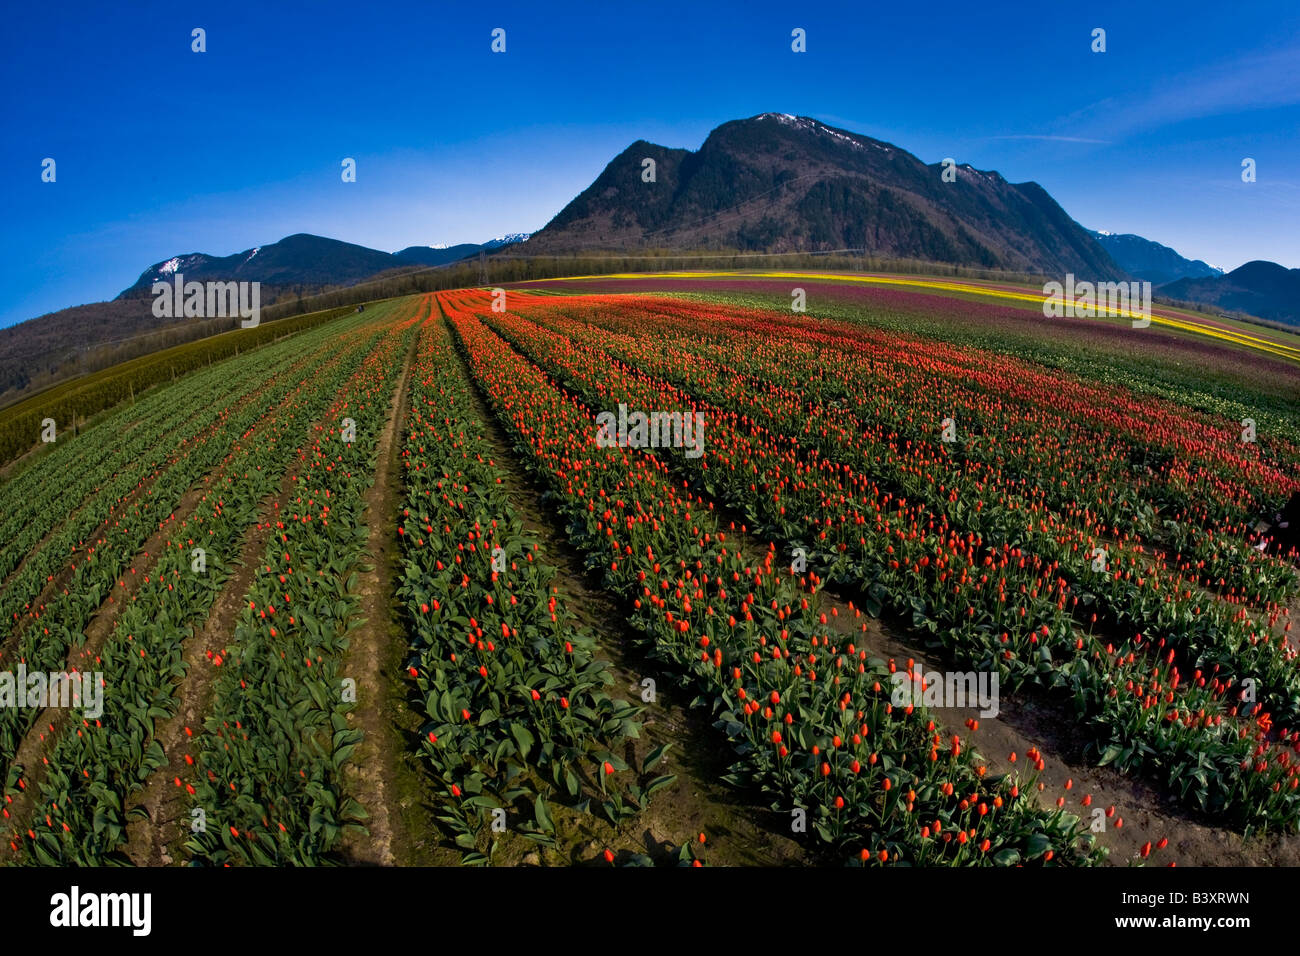 Tulip cultivation, British Columbia, Canada - Stock Image